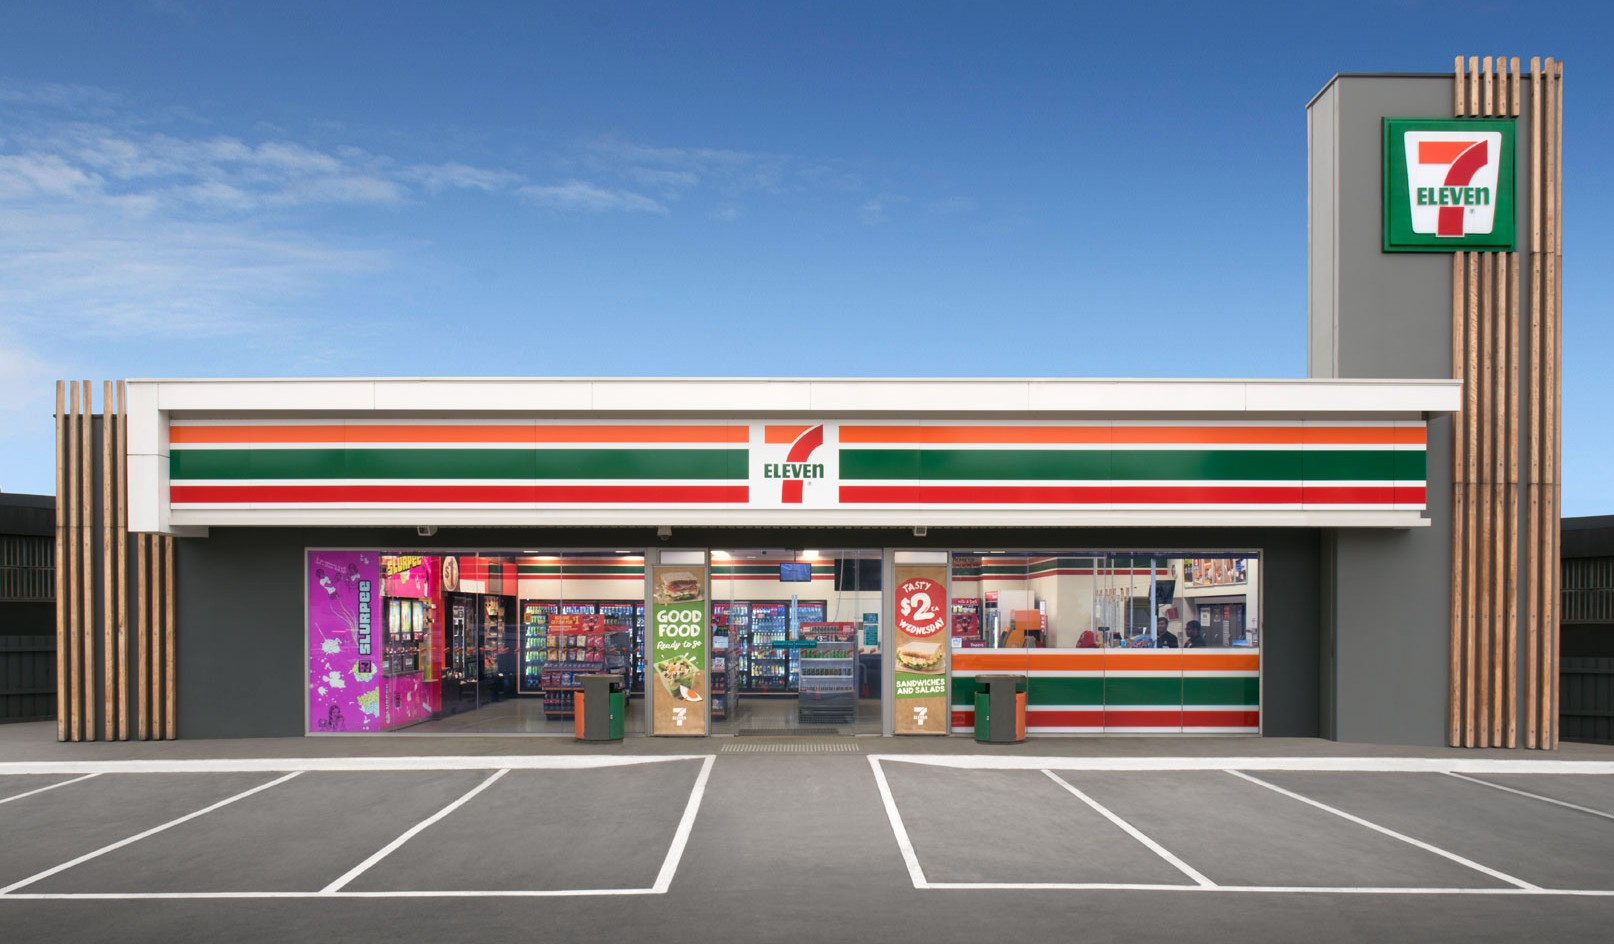 <div>industrial</div><div> <a href='http://www.nedmeldrum.com.au/project/7-eleven-properties/'>View Series</a></div>